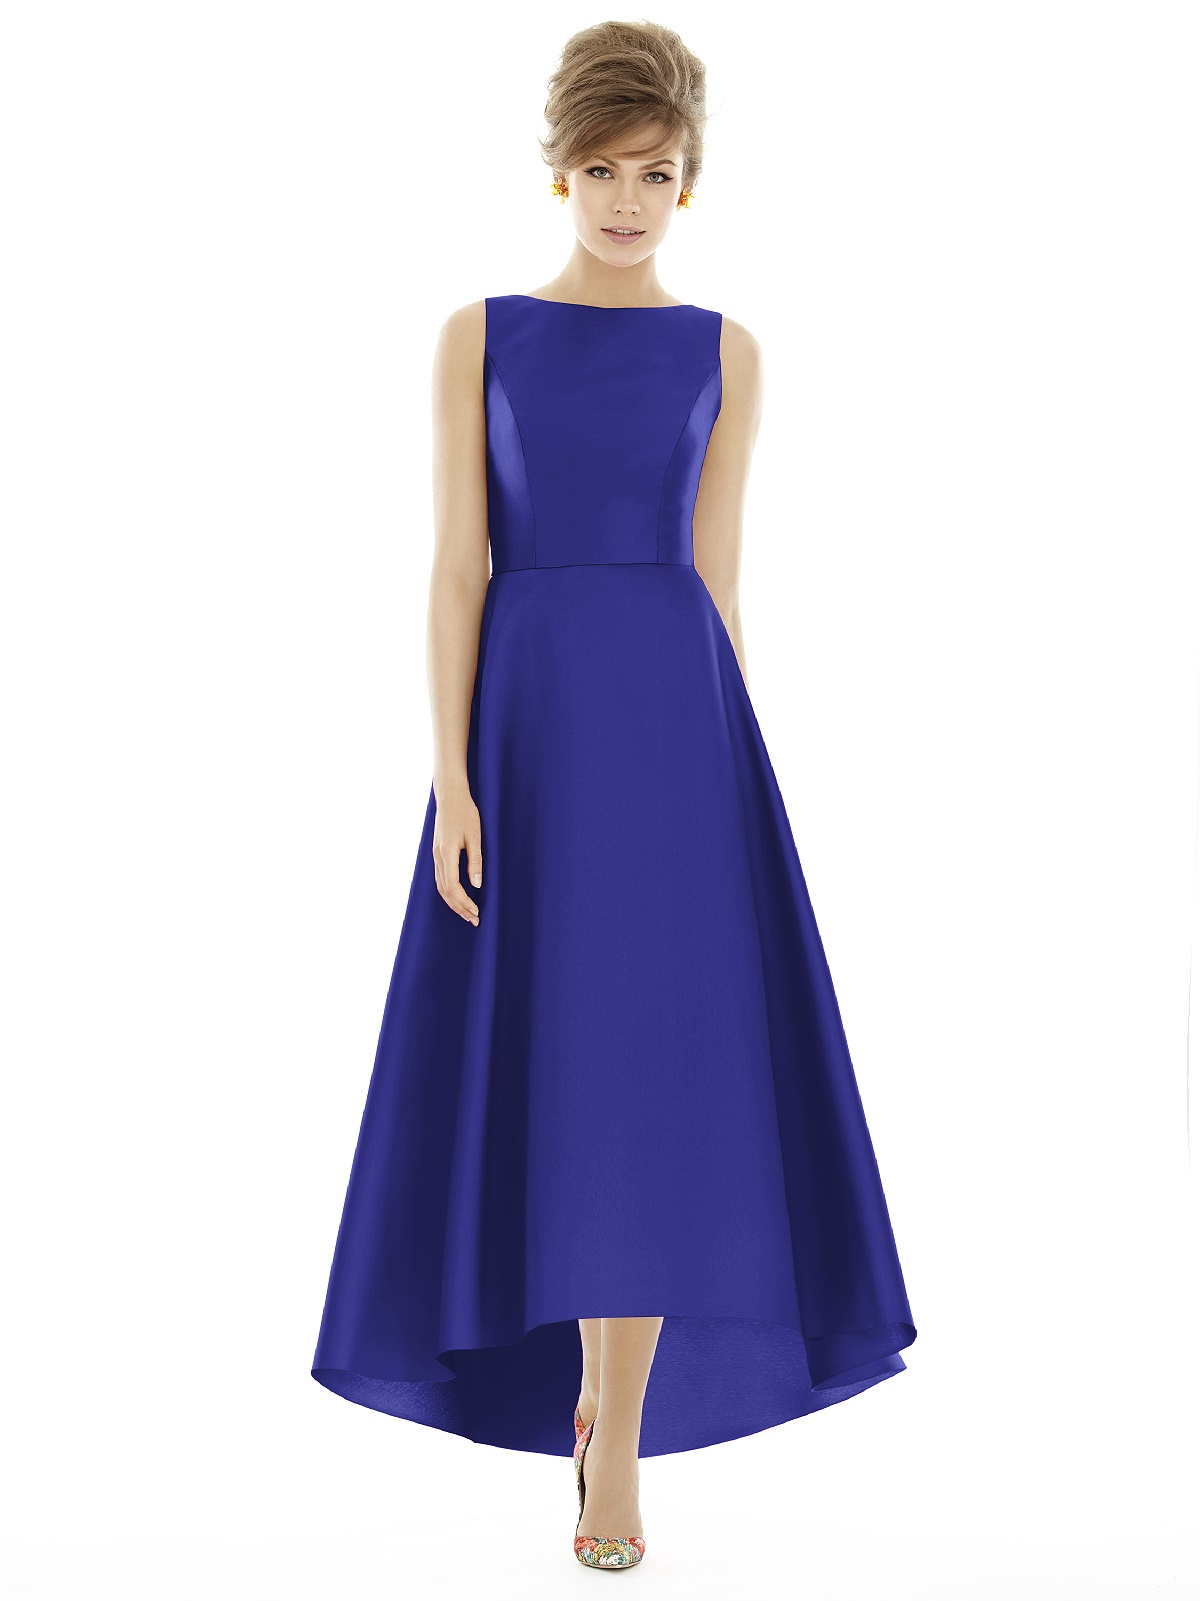 Alfred sung bridesmaid dressesalfred sung dresses d 698the dessy alfred sung bridesmaid dresses alfred sung d698 loading zoom ombrellifo Gallery